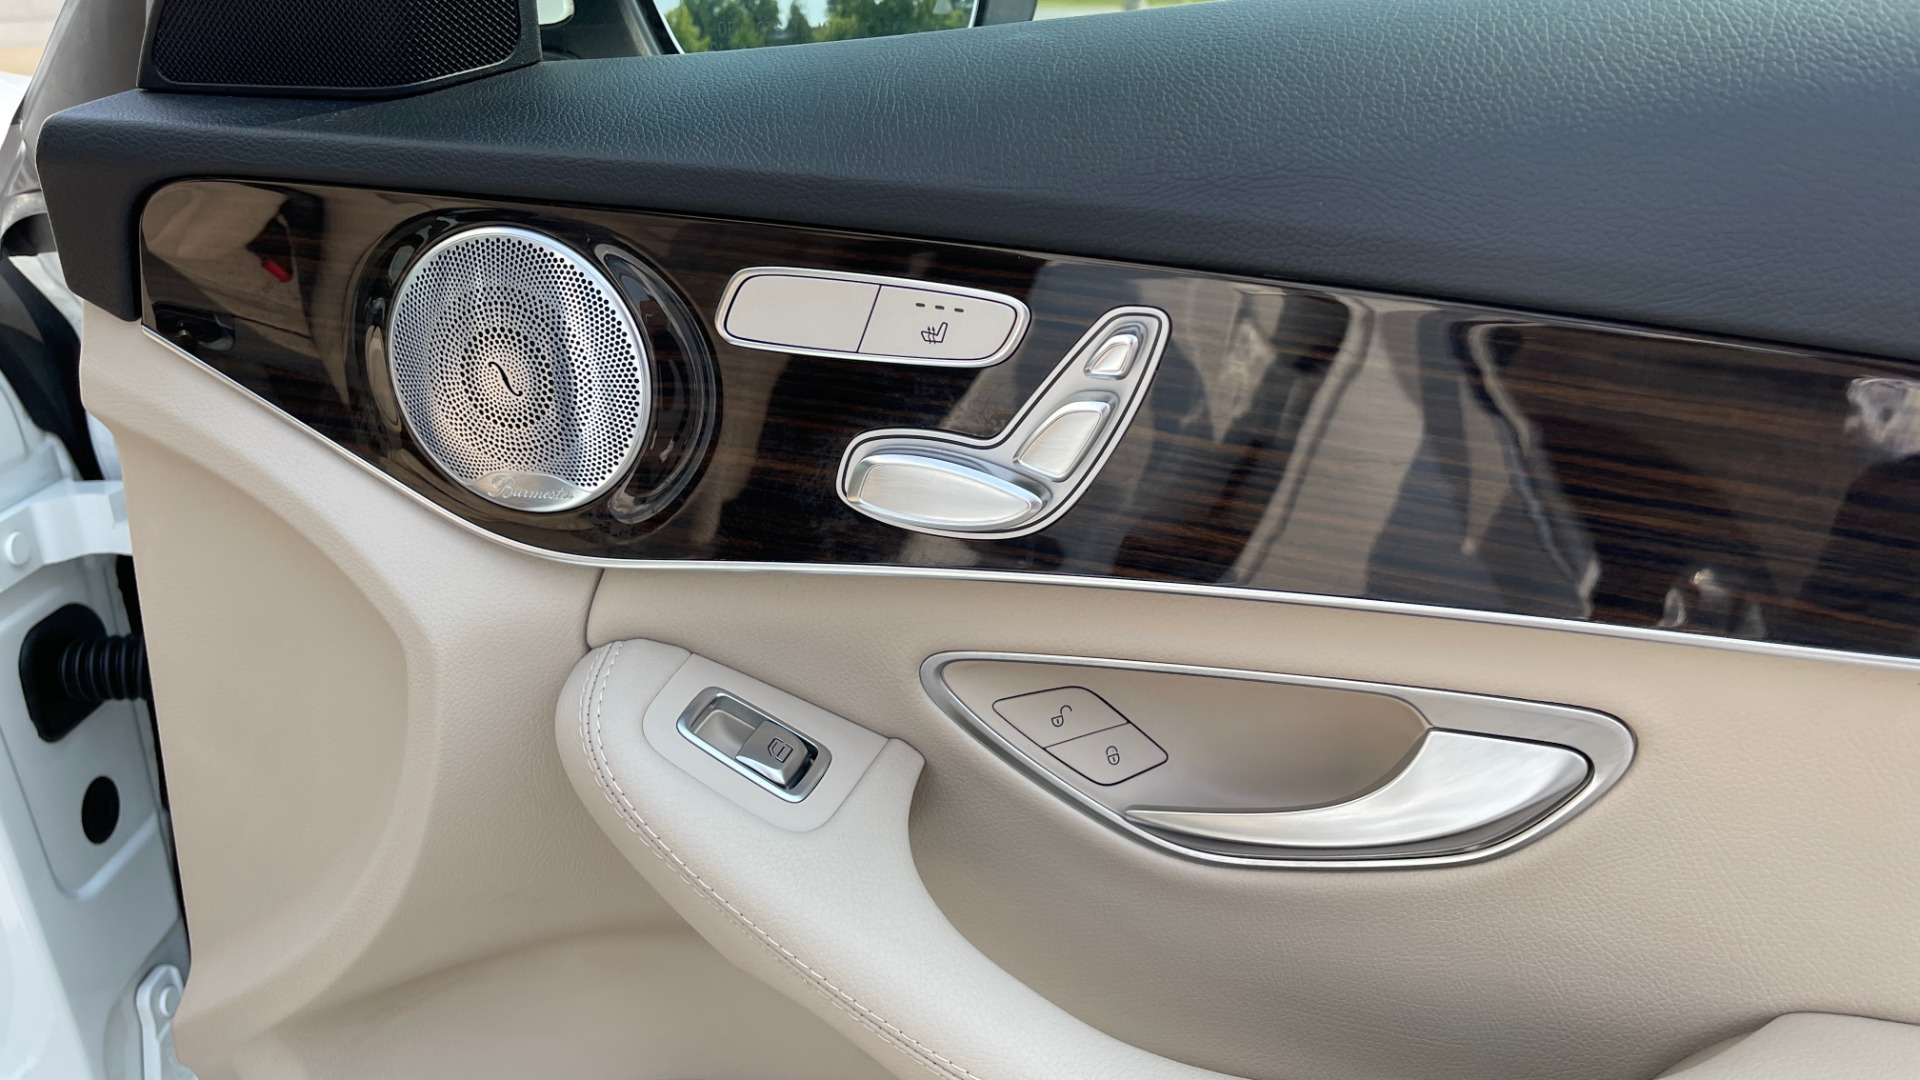 Used 2018 Mercedes-Benz C-Class C 300 4MATIC / PREMIUM / BURMESTER / HTD STS / SUNROOF / REARVIEW for sale $33,995 at Formula Imports in Charlotte NC 28227 55